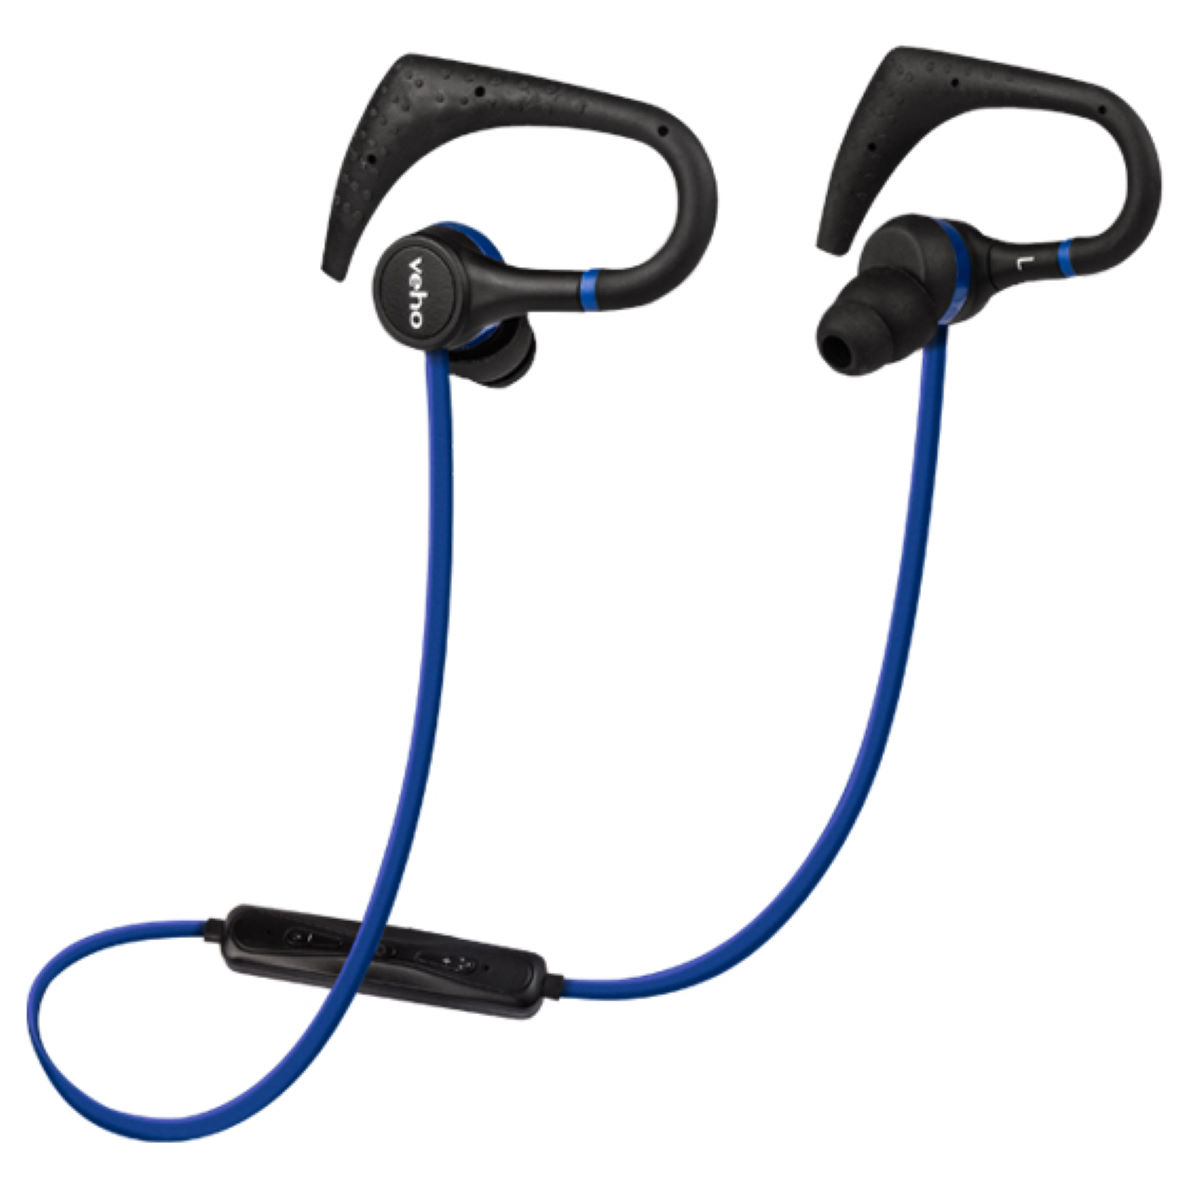 Veho Veho ZB-1 In-Ear Sports Wireless Bluetooth Headphones   Headphones